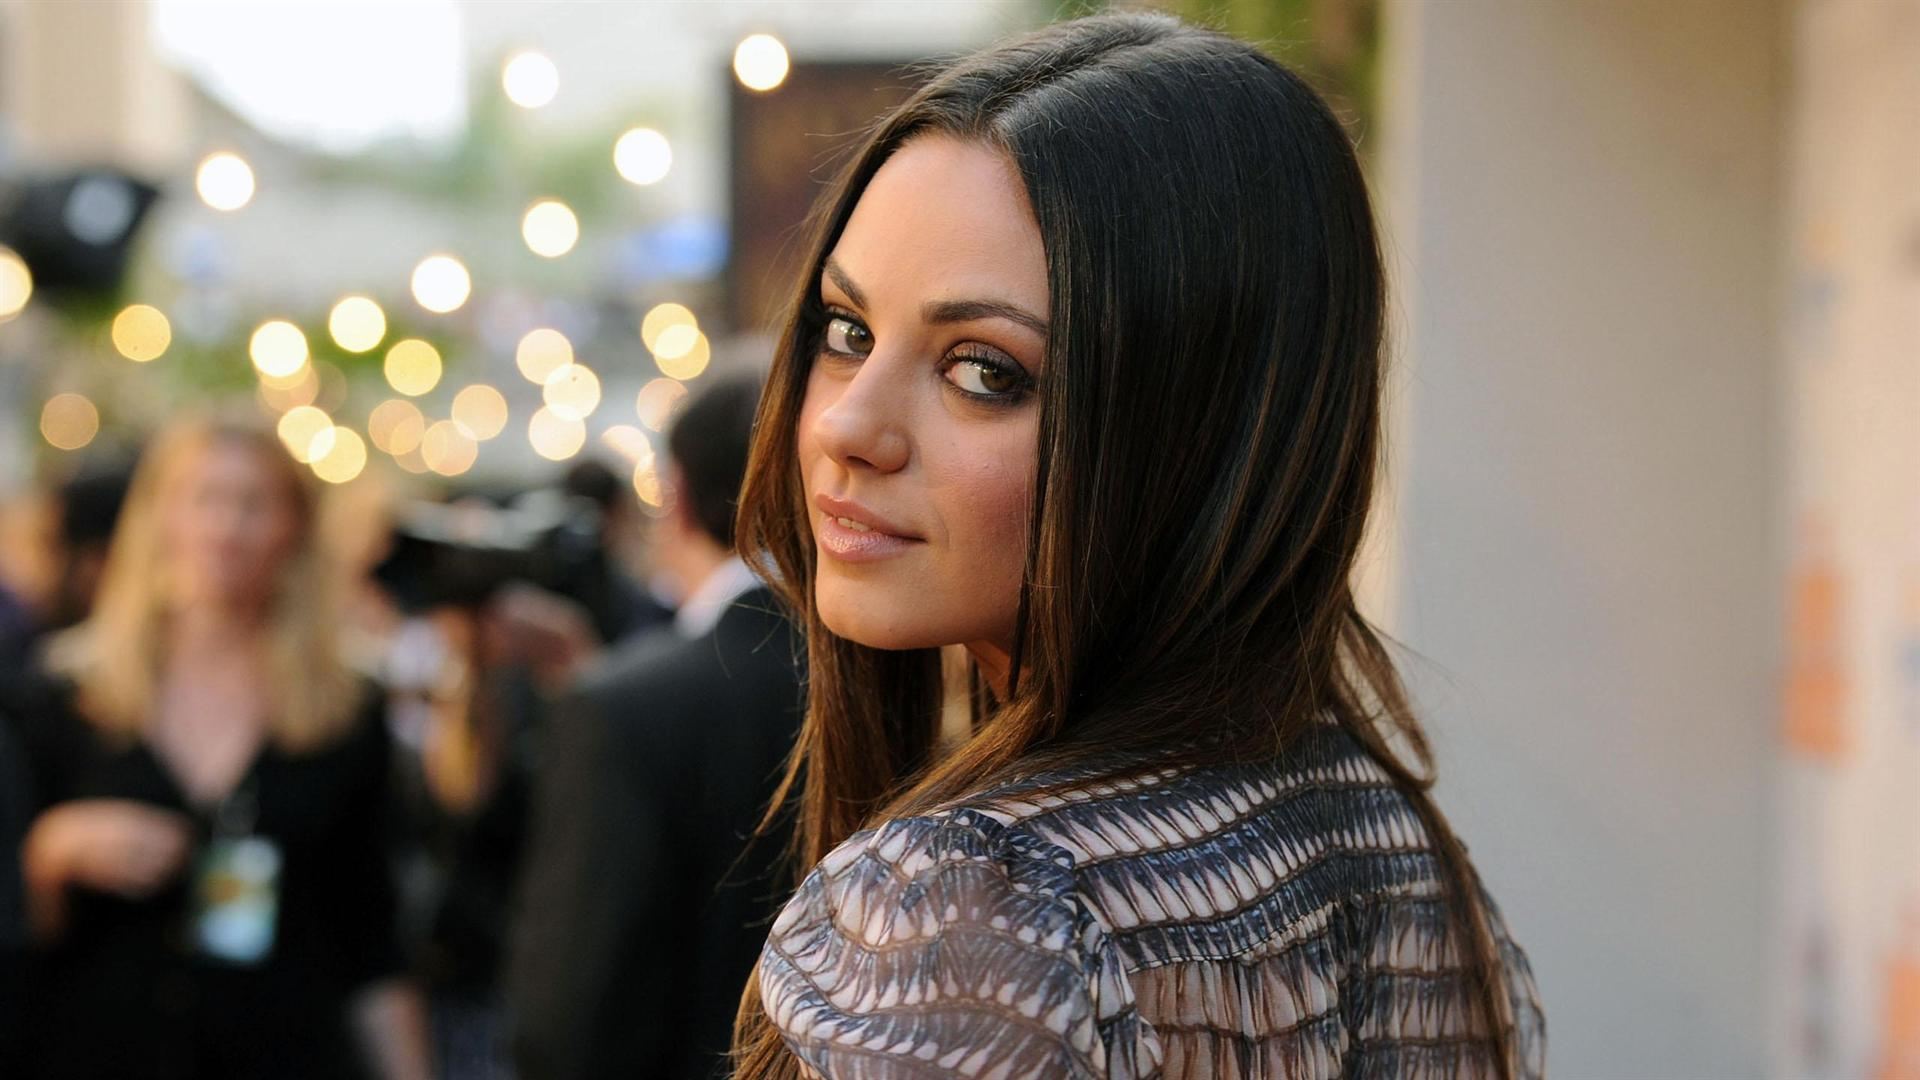 free lovely mila kunis hd pics download